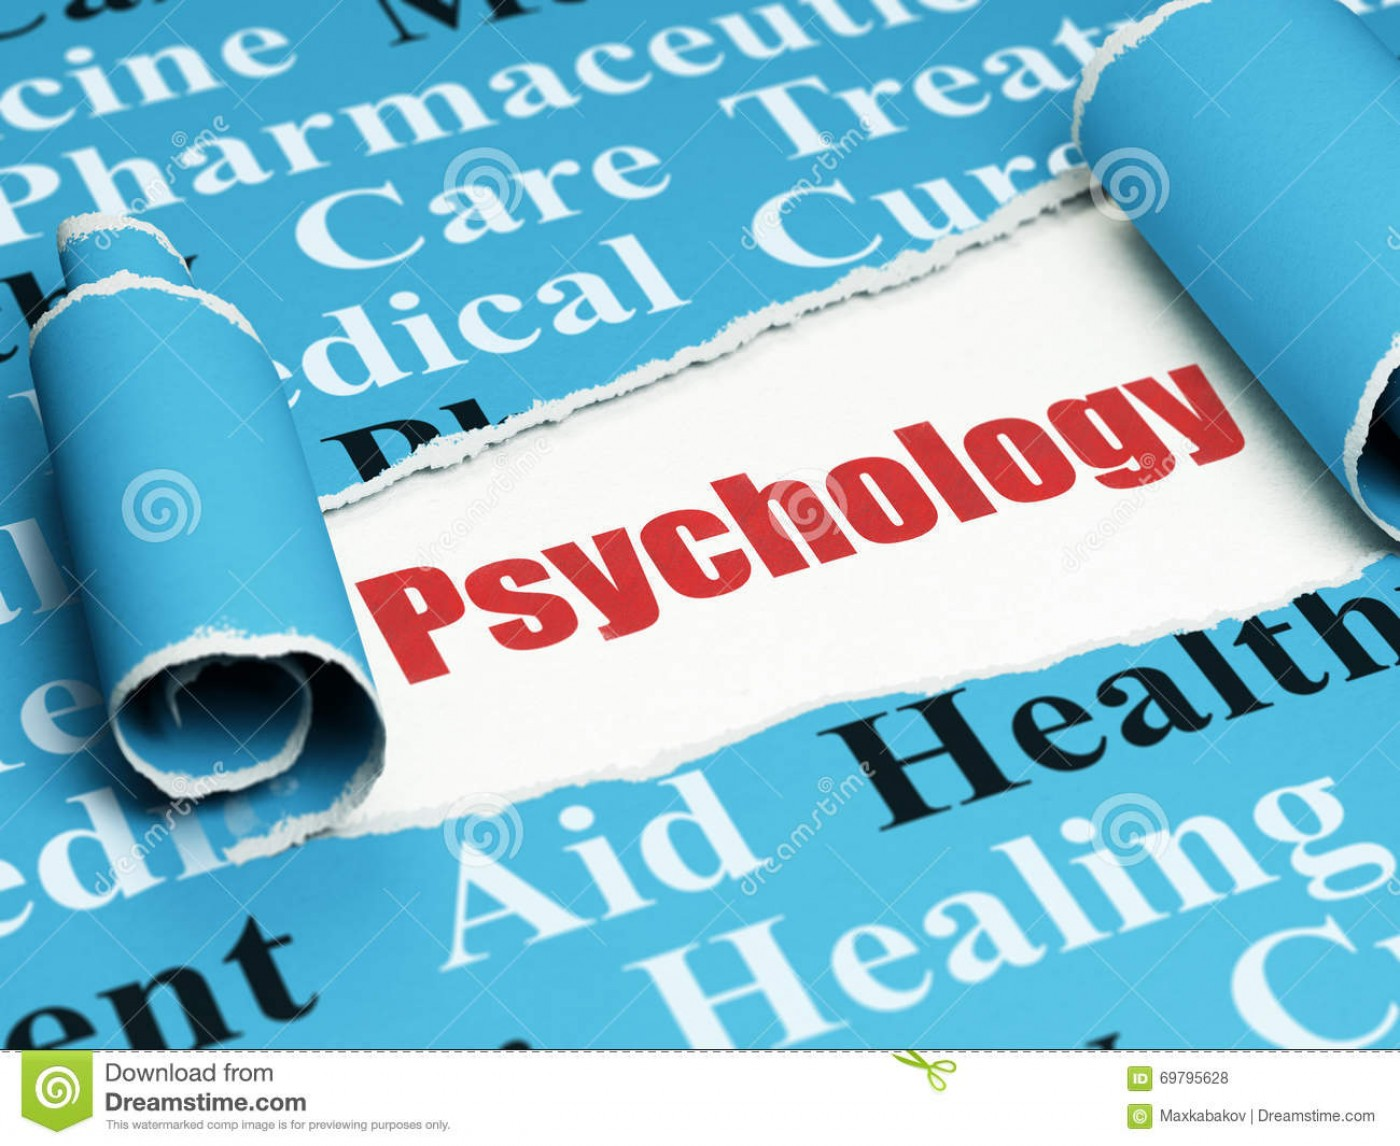 010 Research Paper Psychology On Dreams Health Concept Red Text Under Piece Torn Curled Blue Tag Cloud Rendering Singular Topics Articles 2017 1400